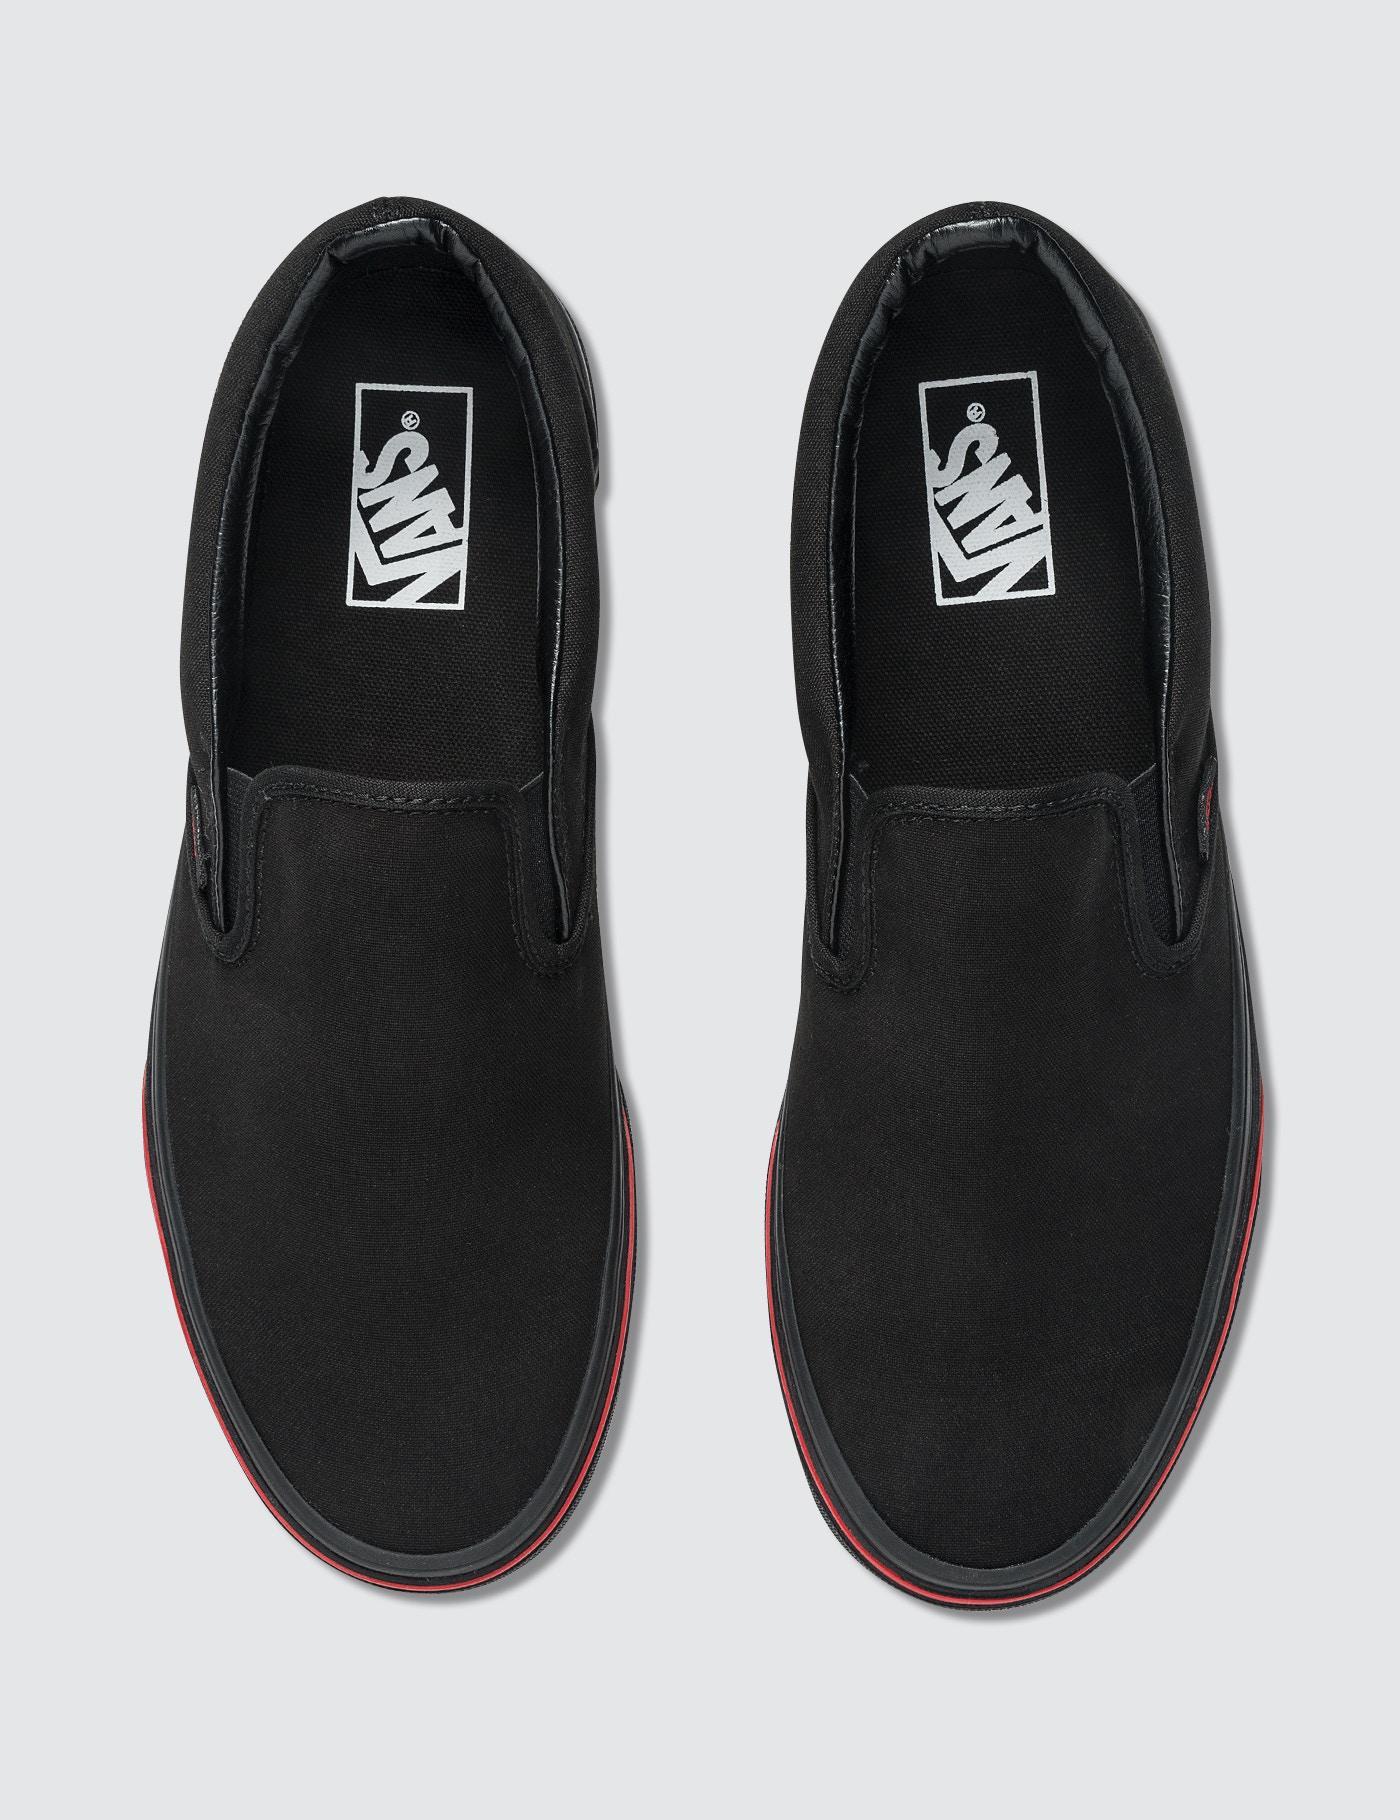 5b6956c2a76 Vans Ua Classic Slip-on (flame Wall) in Black for Men - Lyst